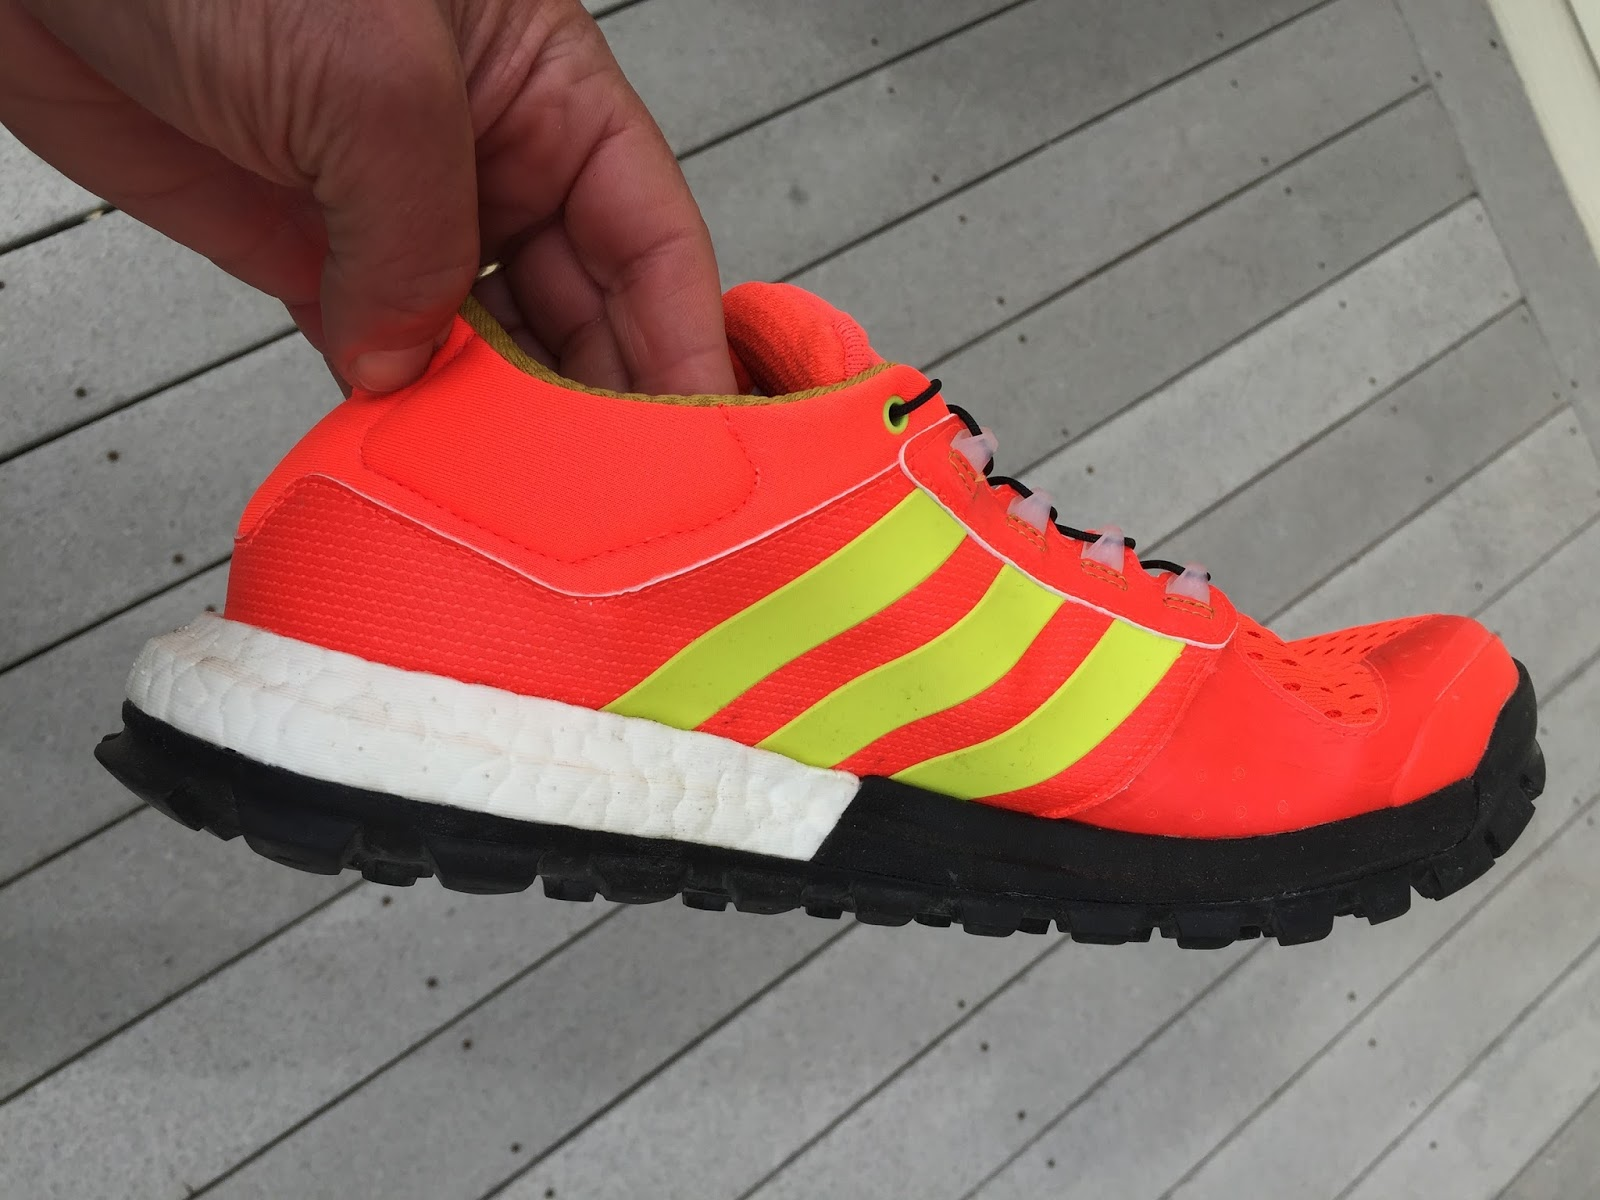 adidas boost trail running shoes